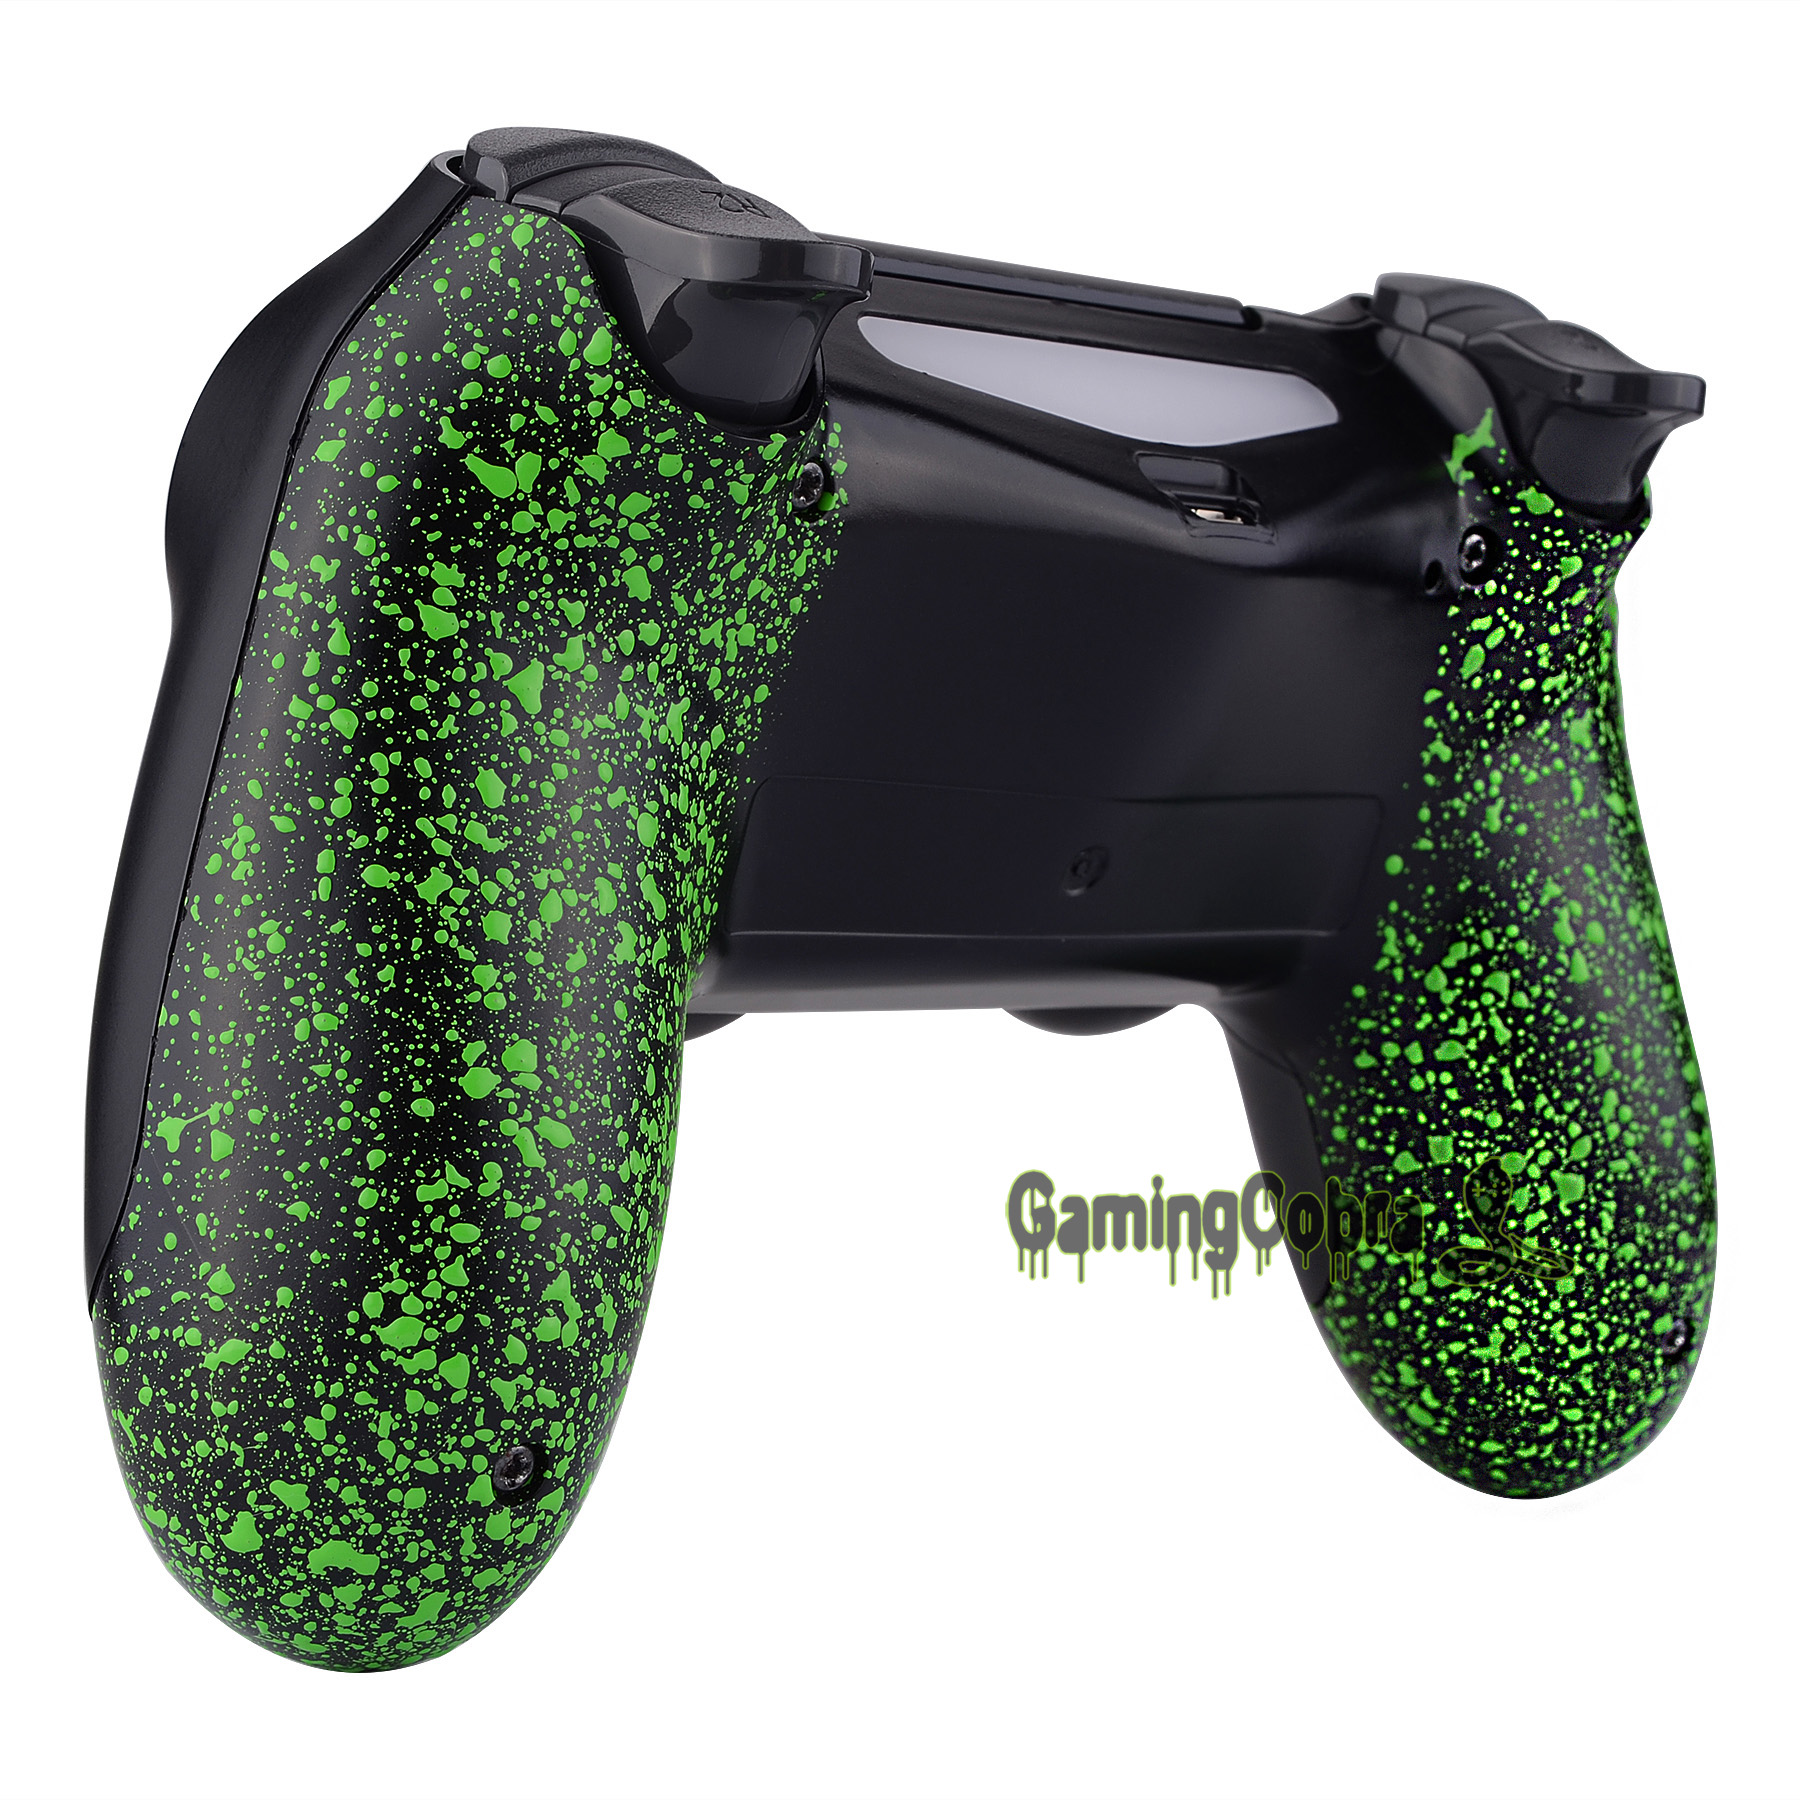 Textured Green Comfortable Non-slip Back <font><b>Shell</b></font> for PS4 /Slim/Pro Game Controller <font><b>JDM</b></font>-040 <font><b>JDM</b></font>-050 <font><b>JDM</b></font>-<font><b>055</b></font> #SP4BR05 image